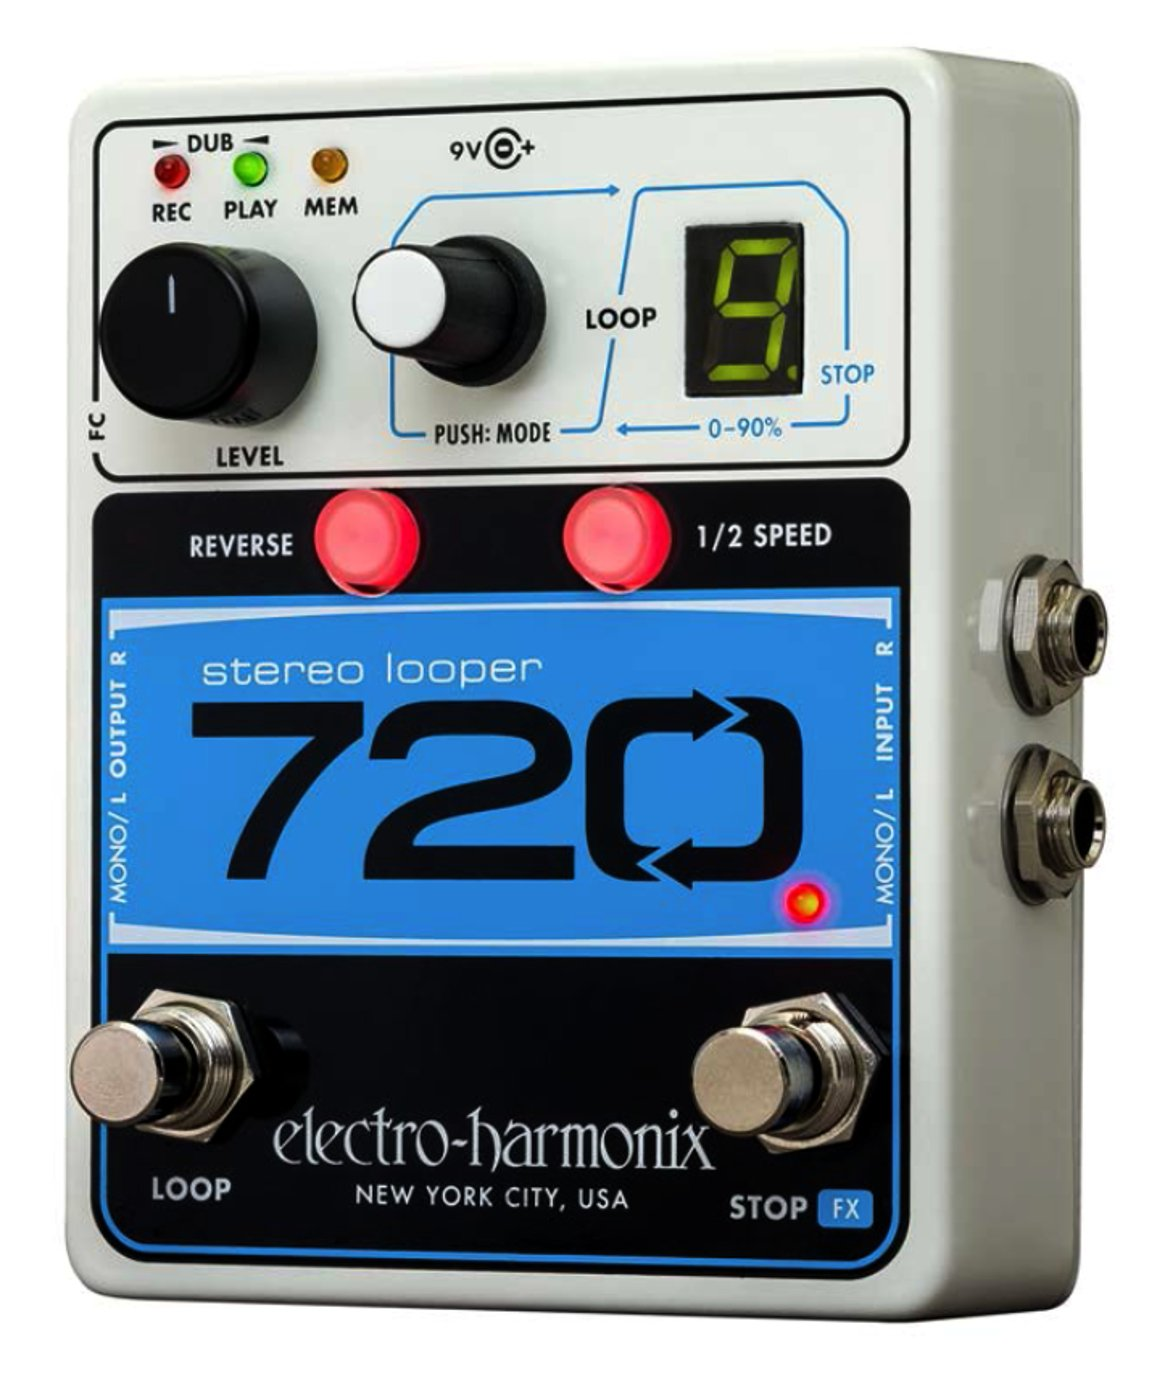 electro harmonix 720 stereo looper looping guitar pedal full compass. Black Bedroom Furniture Sets. Home Design Ideas